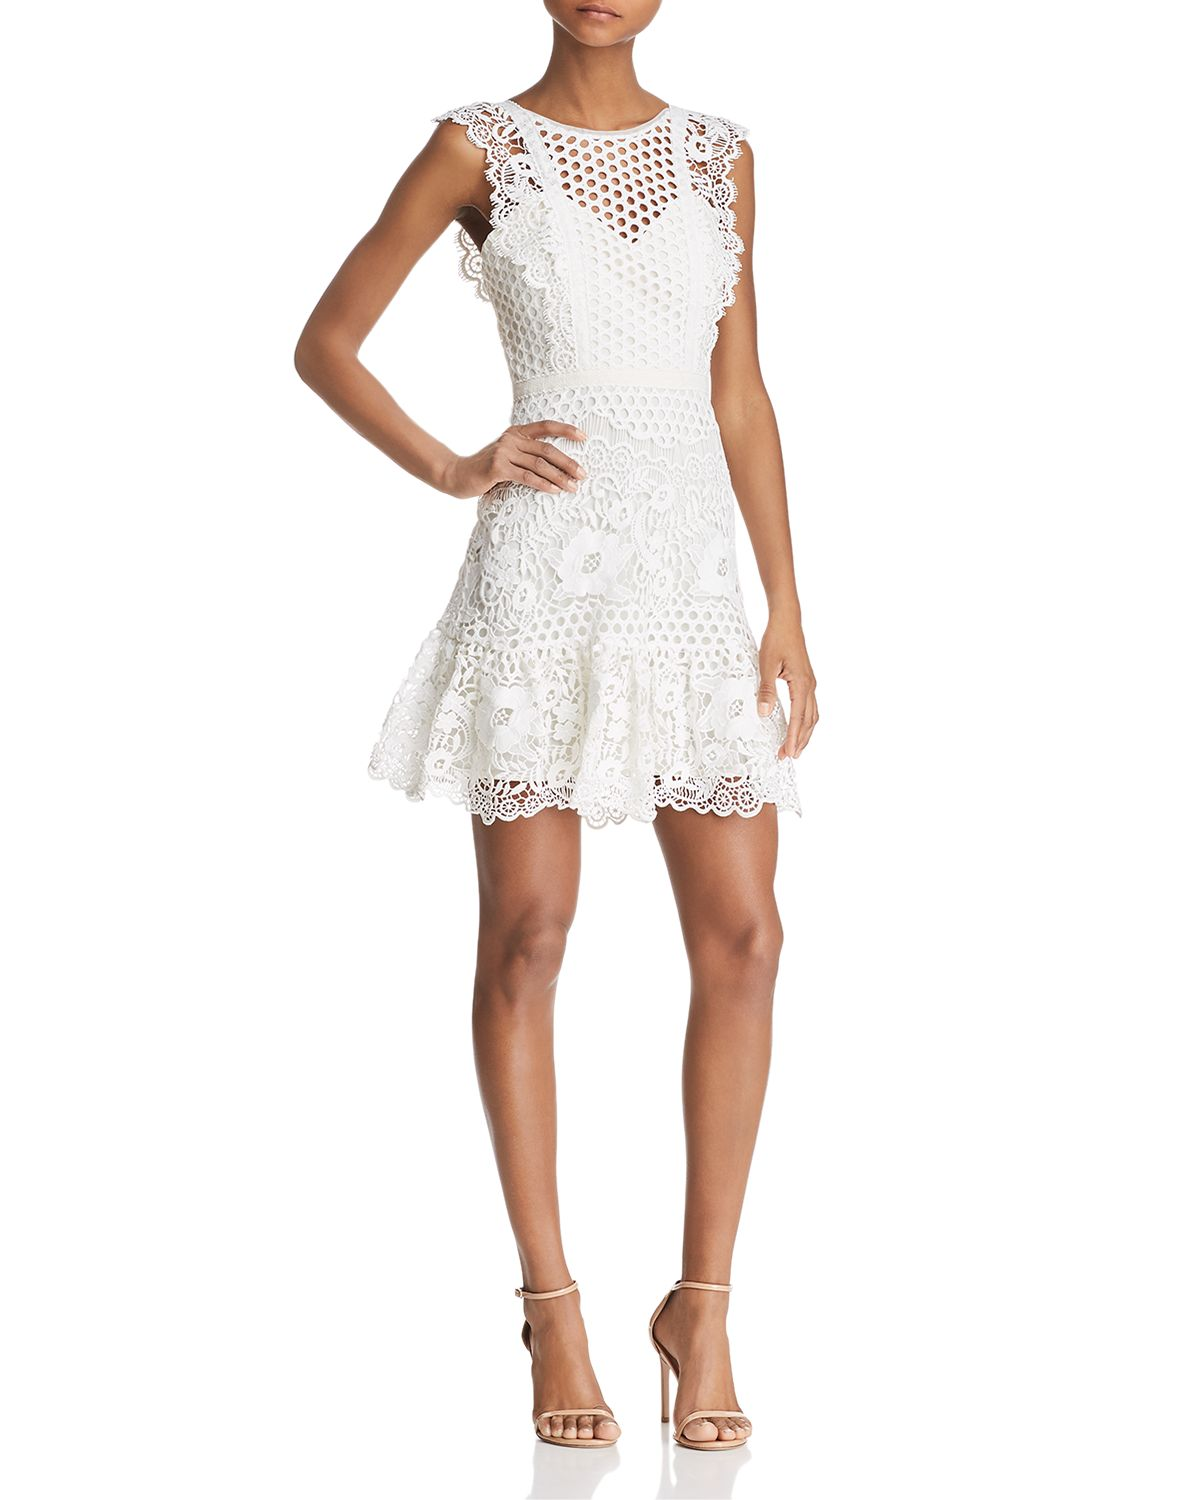 Mixed Lace Dress   100% Exclusive by Bcbgmaxazria